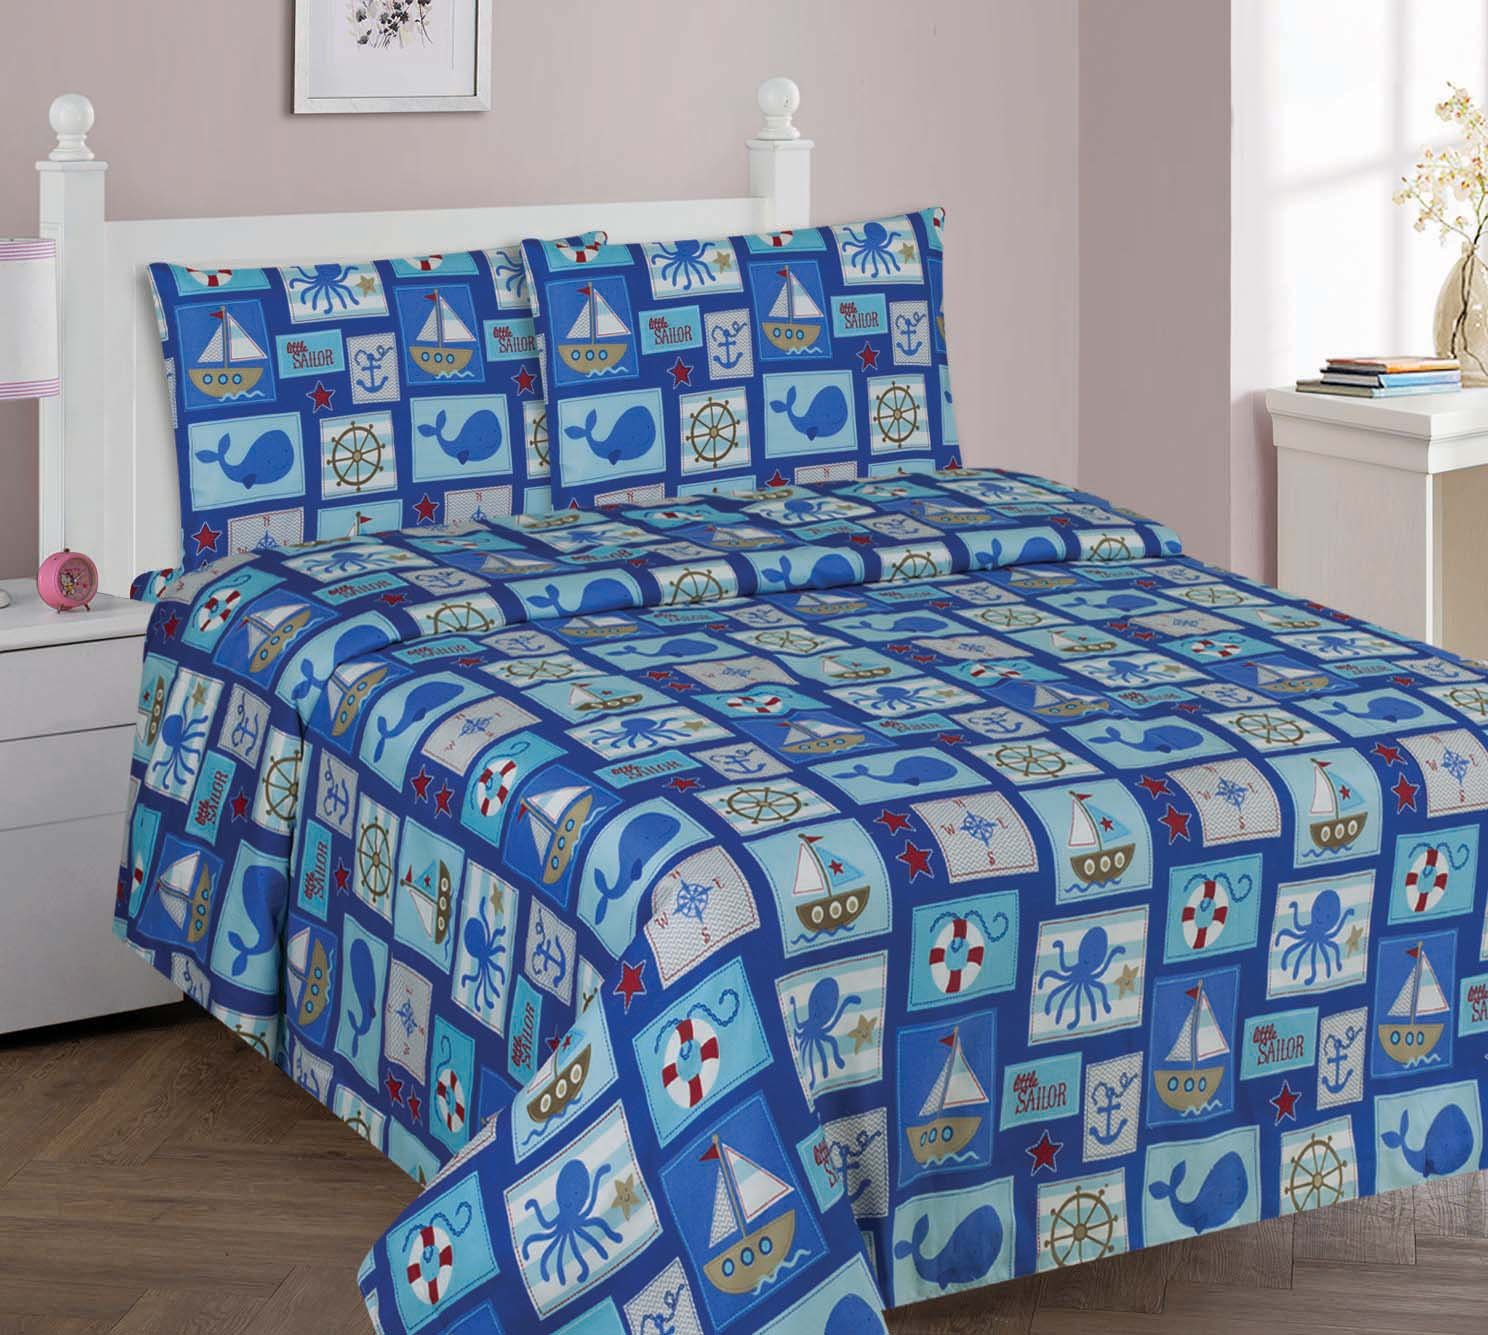 MB Collections Blue Wale, Blue Sailer, Brown Boat 4 Piece Printed Sheets with Pillowcases for Girls / Kids / Teens # Full Size 4 Pcs Sheets Set